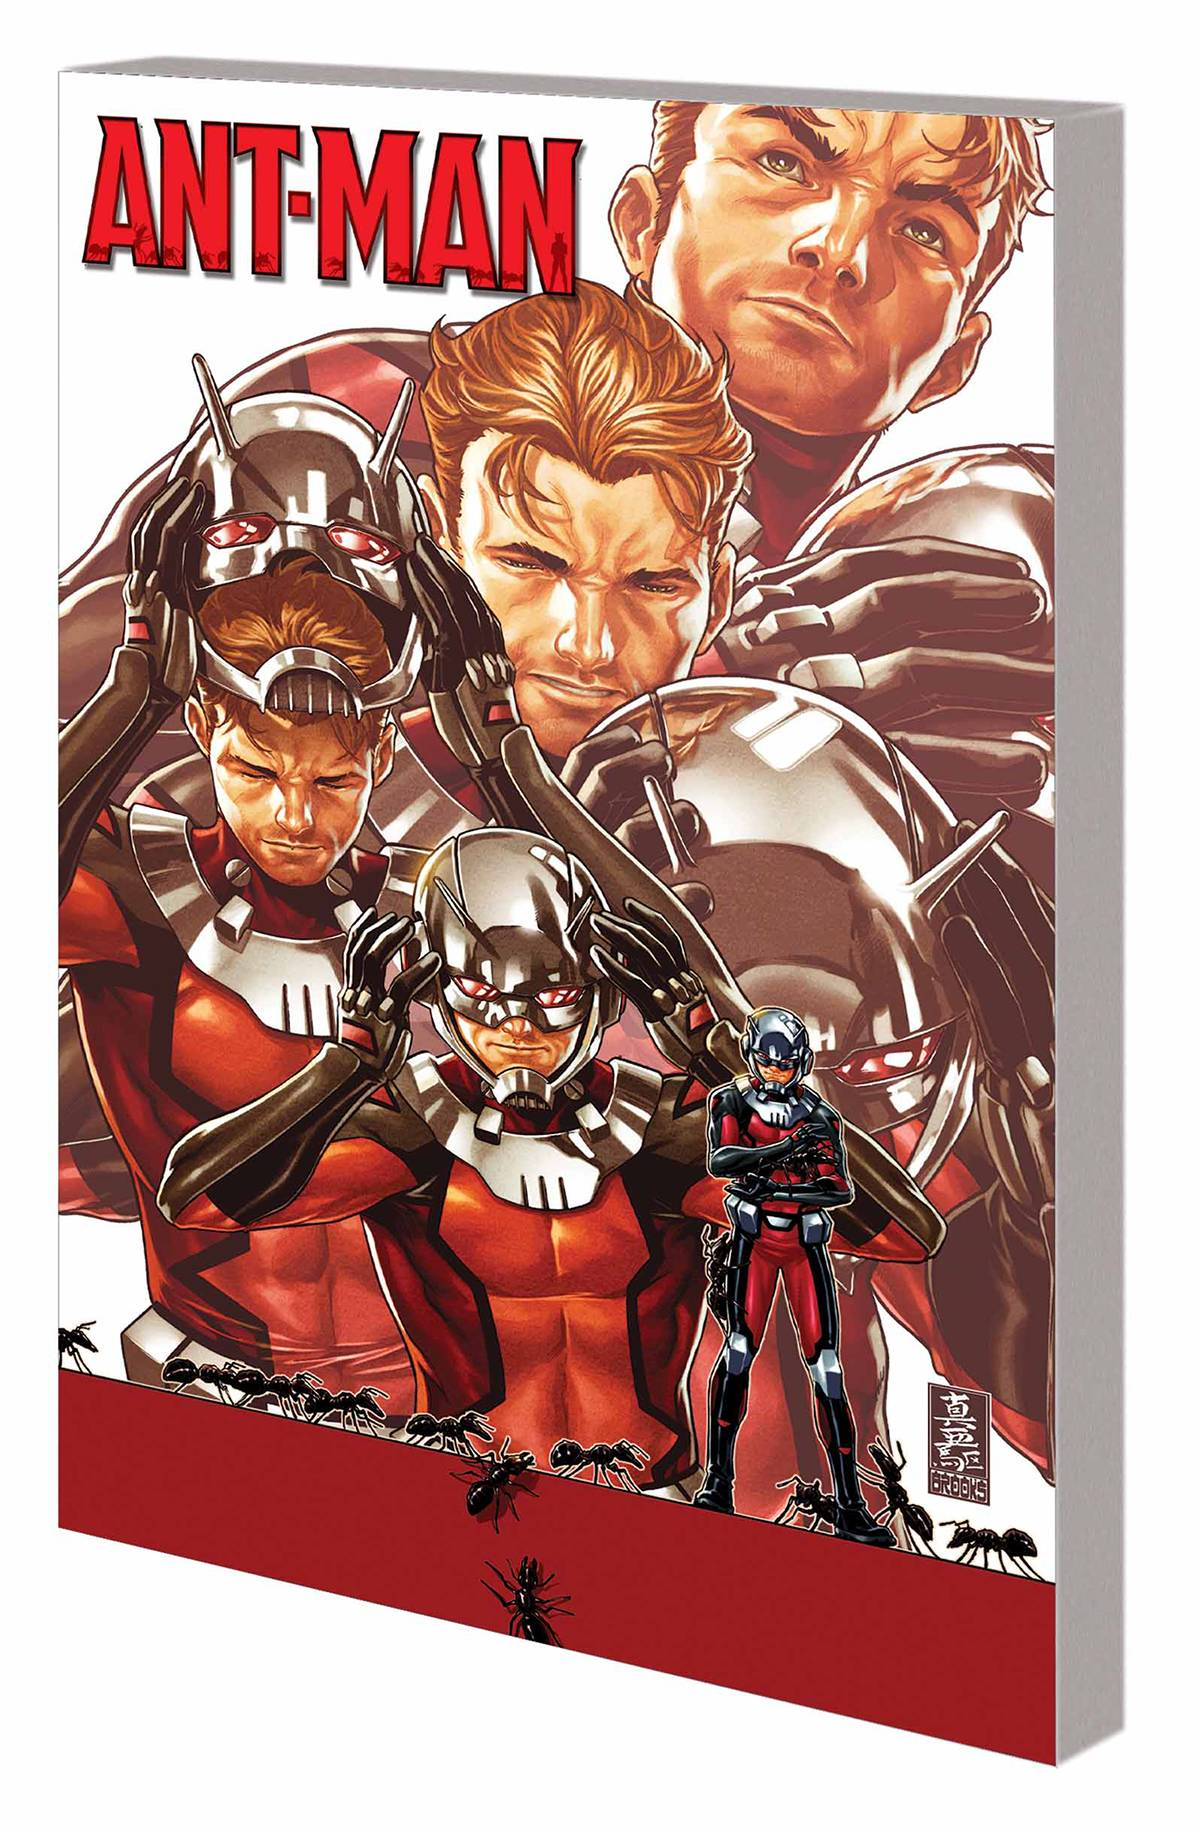 ANT-MAN TP VOL 01 SECOND CHANCE MAN